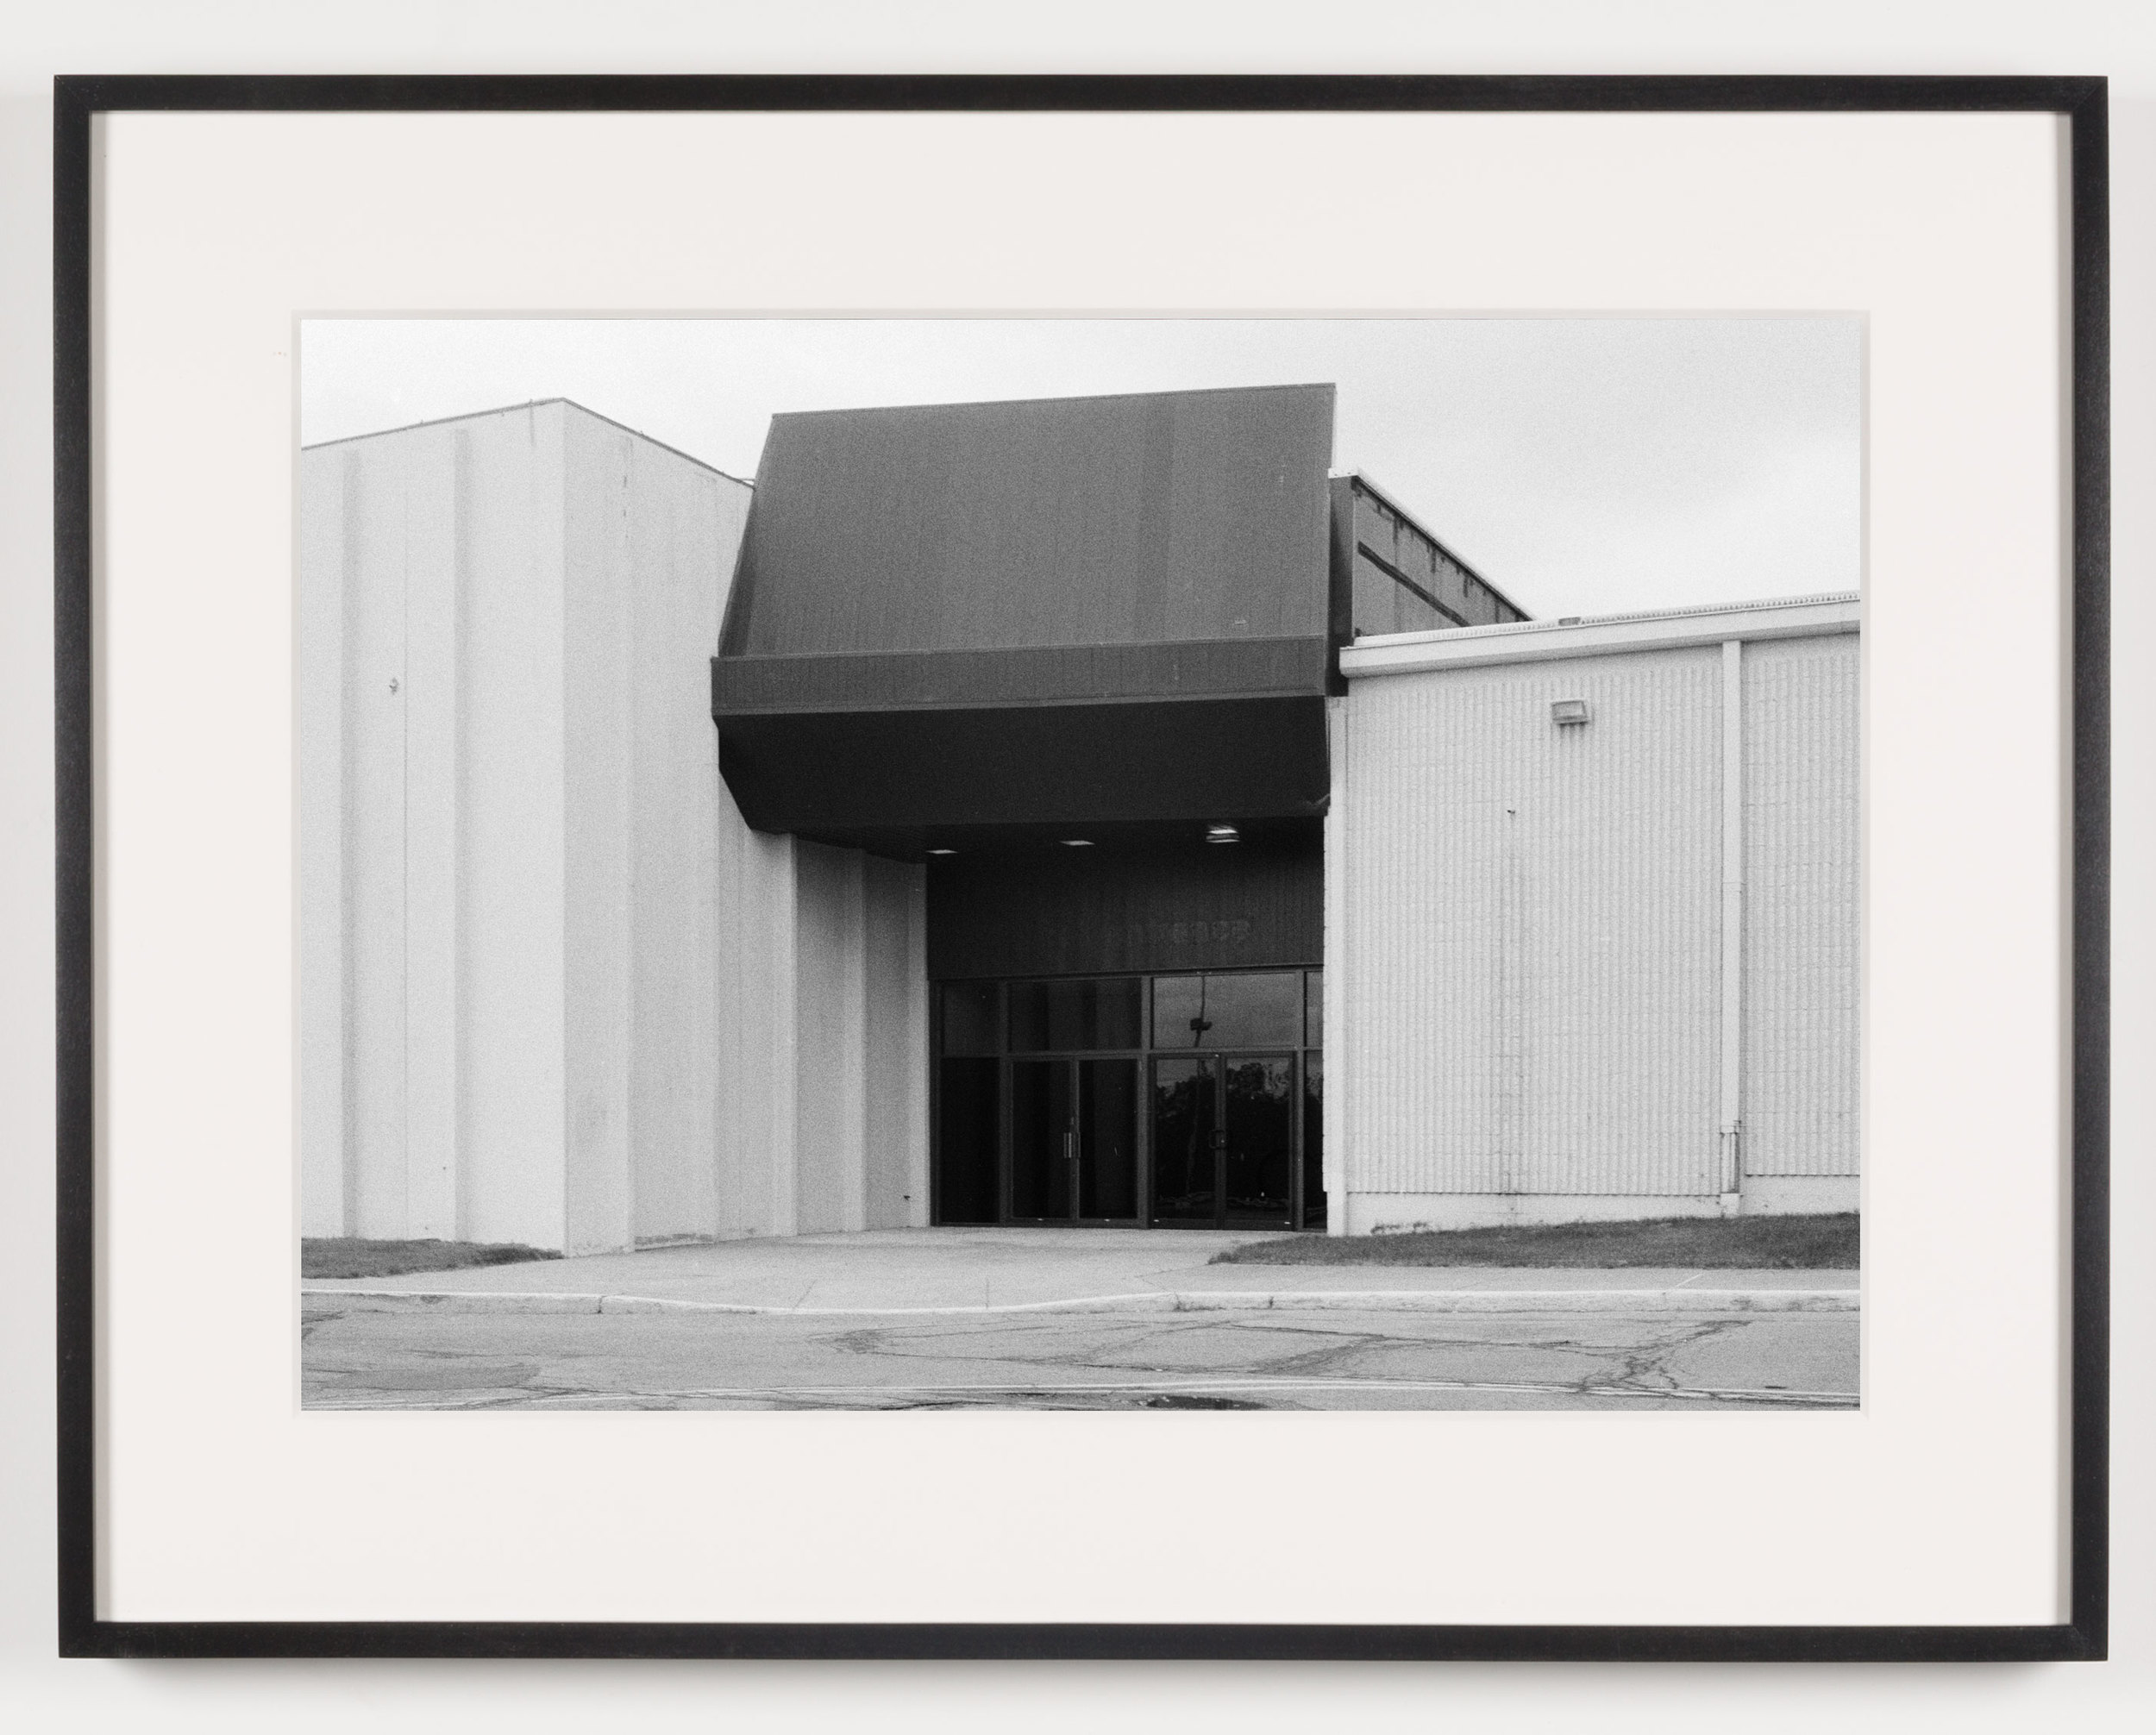 Midway Mall (View of Exterior), Elyria, OH, Est. 1965    2011   Epson Ultrachrome K3 archival ink jet print on Hahnemühle Photo Rag paper  21 5/8 x 28 1/8 inches   American Passages, 2001–2011